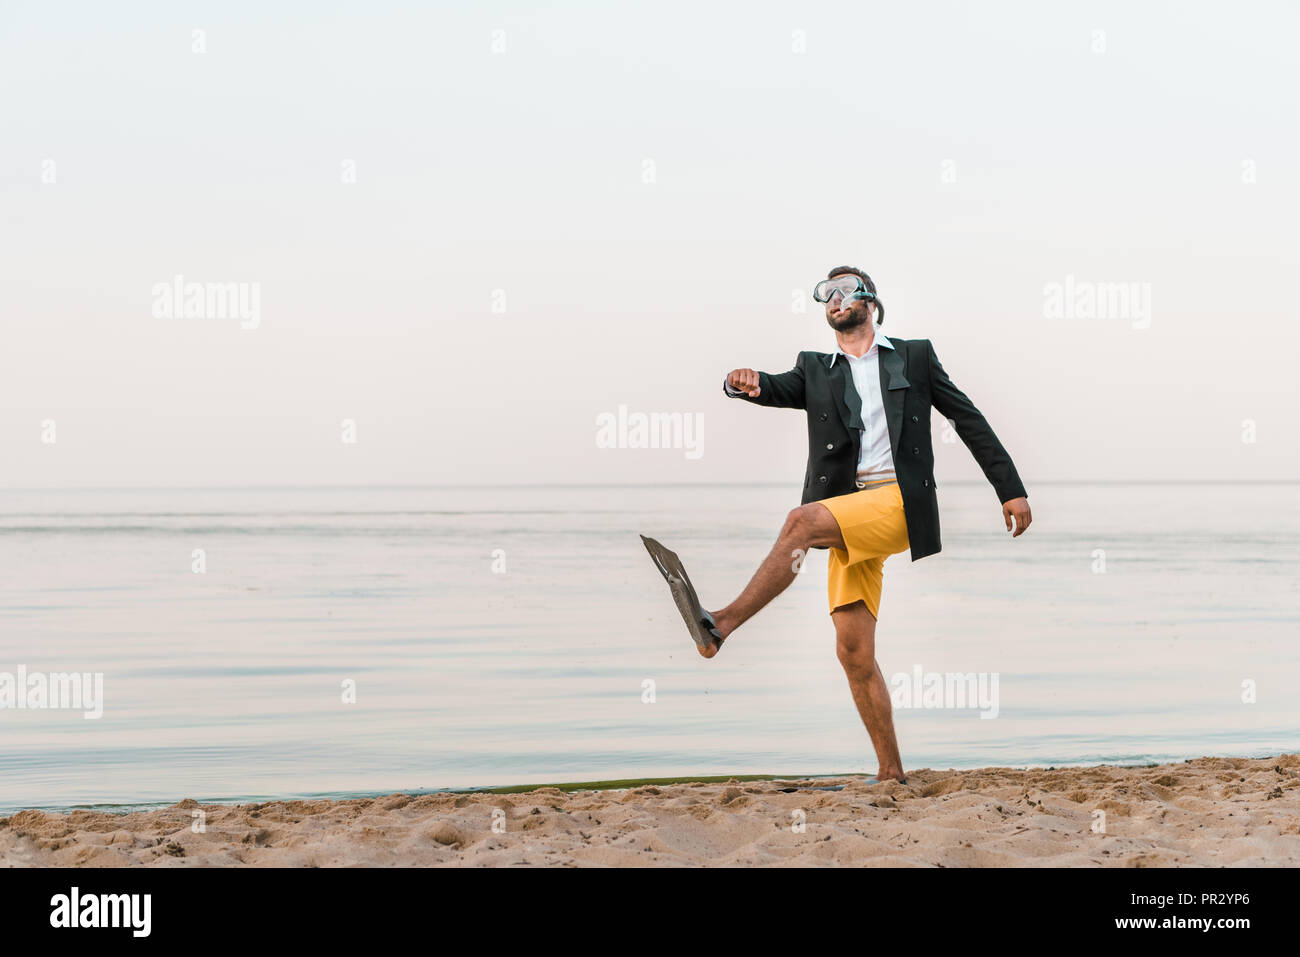 man in black jacket and shorts walking with swimming mask and flippers on sandy beach - Stock Image